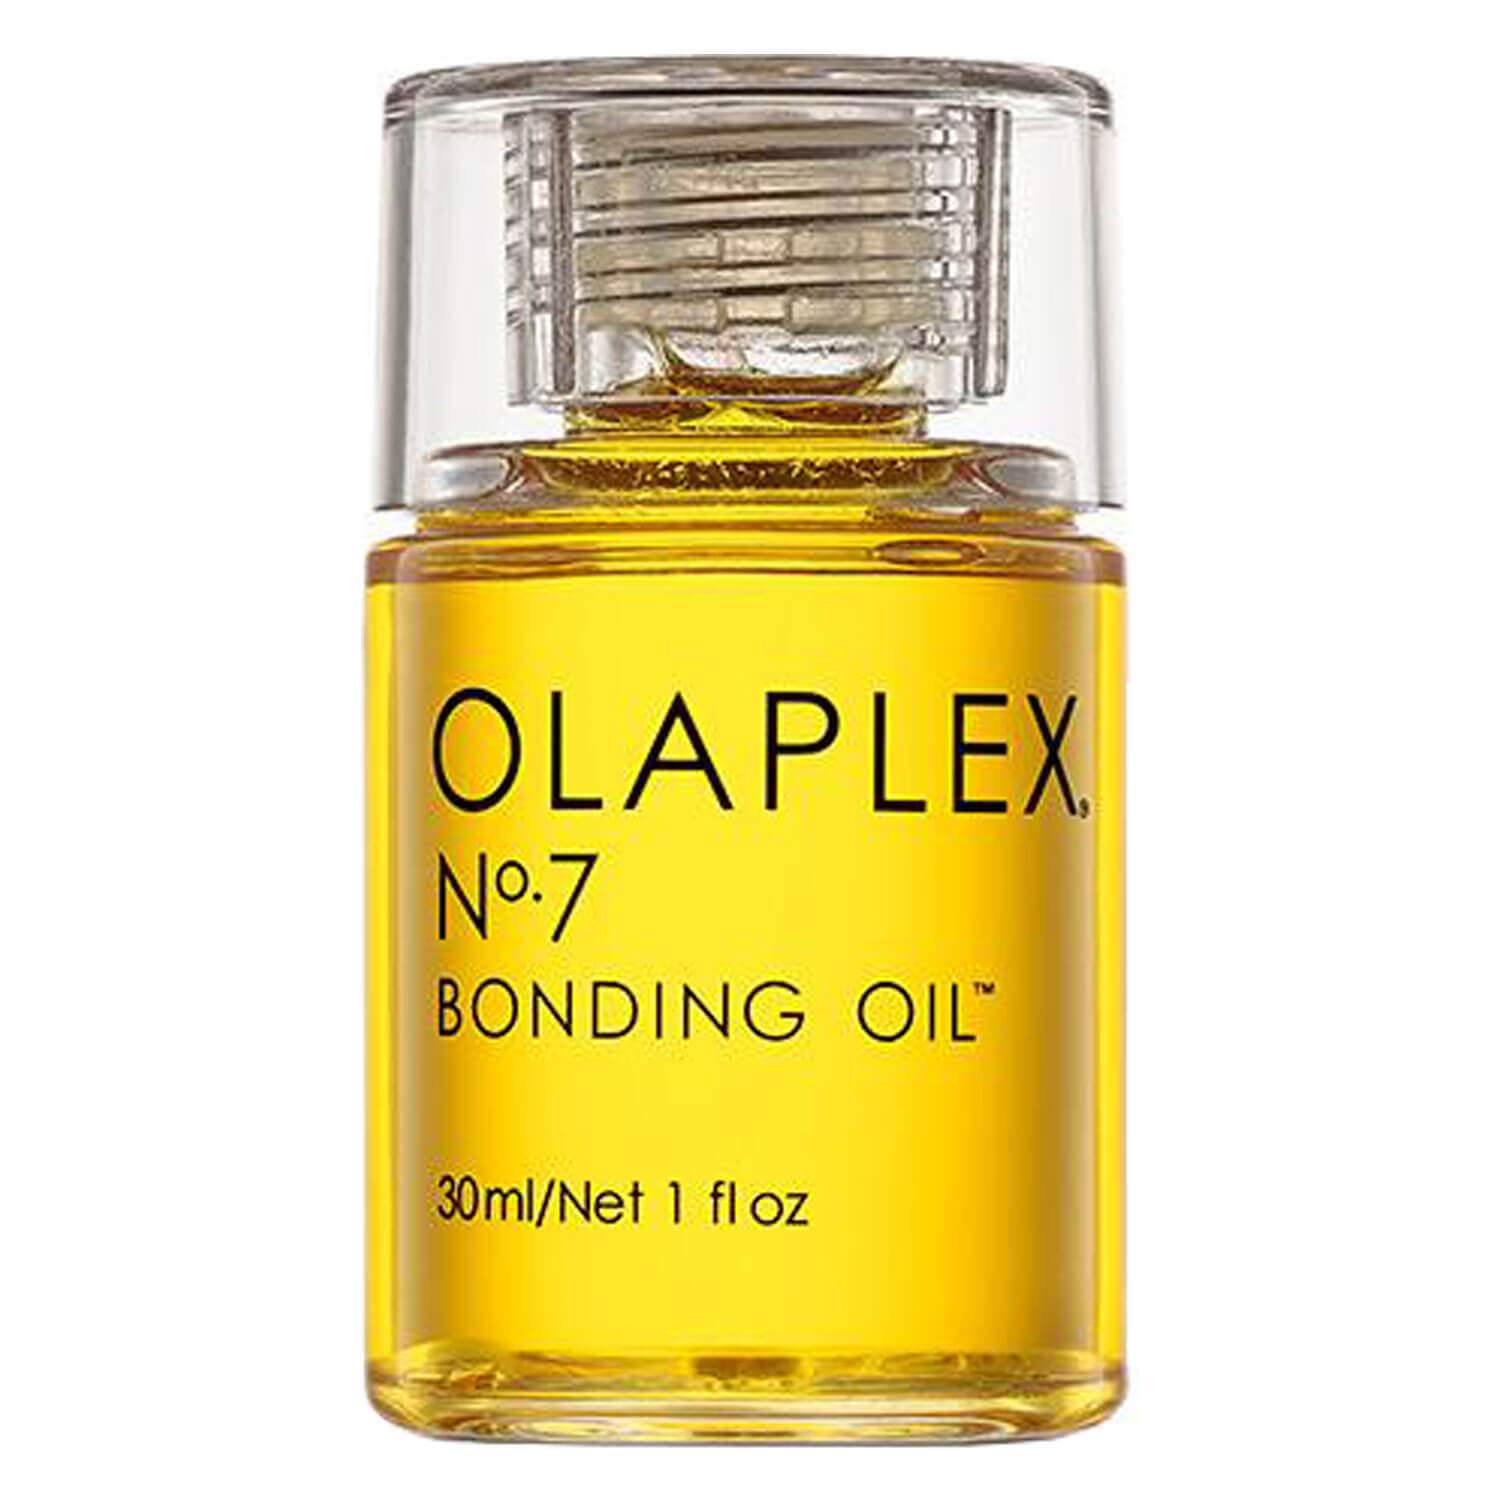 Olaplex - Bonding Oil No. 7 - 30ml